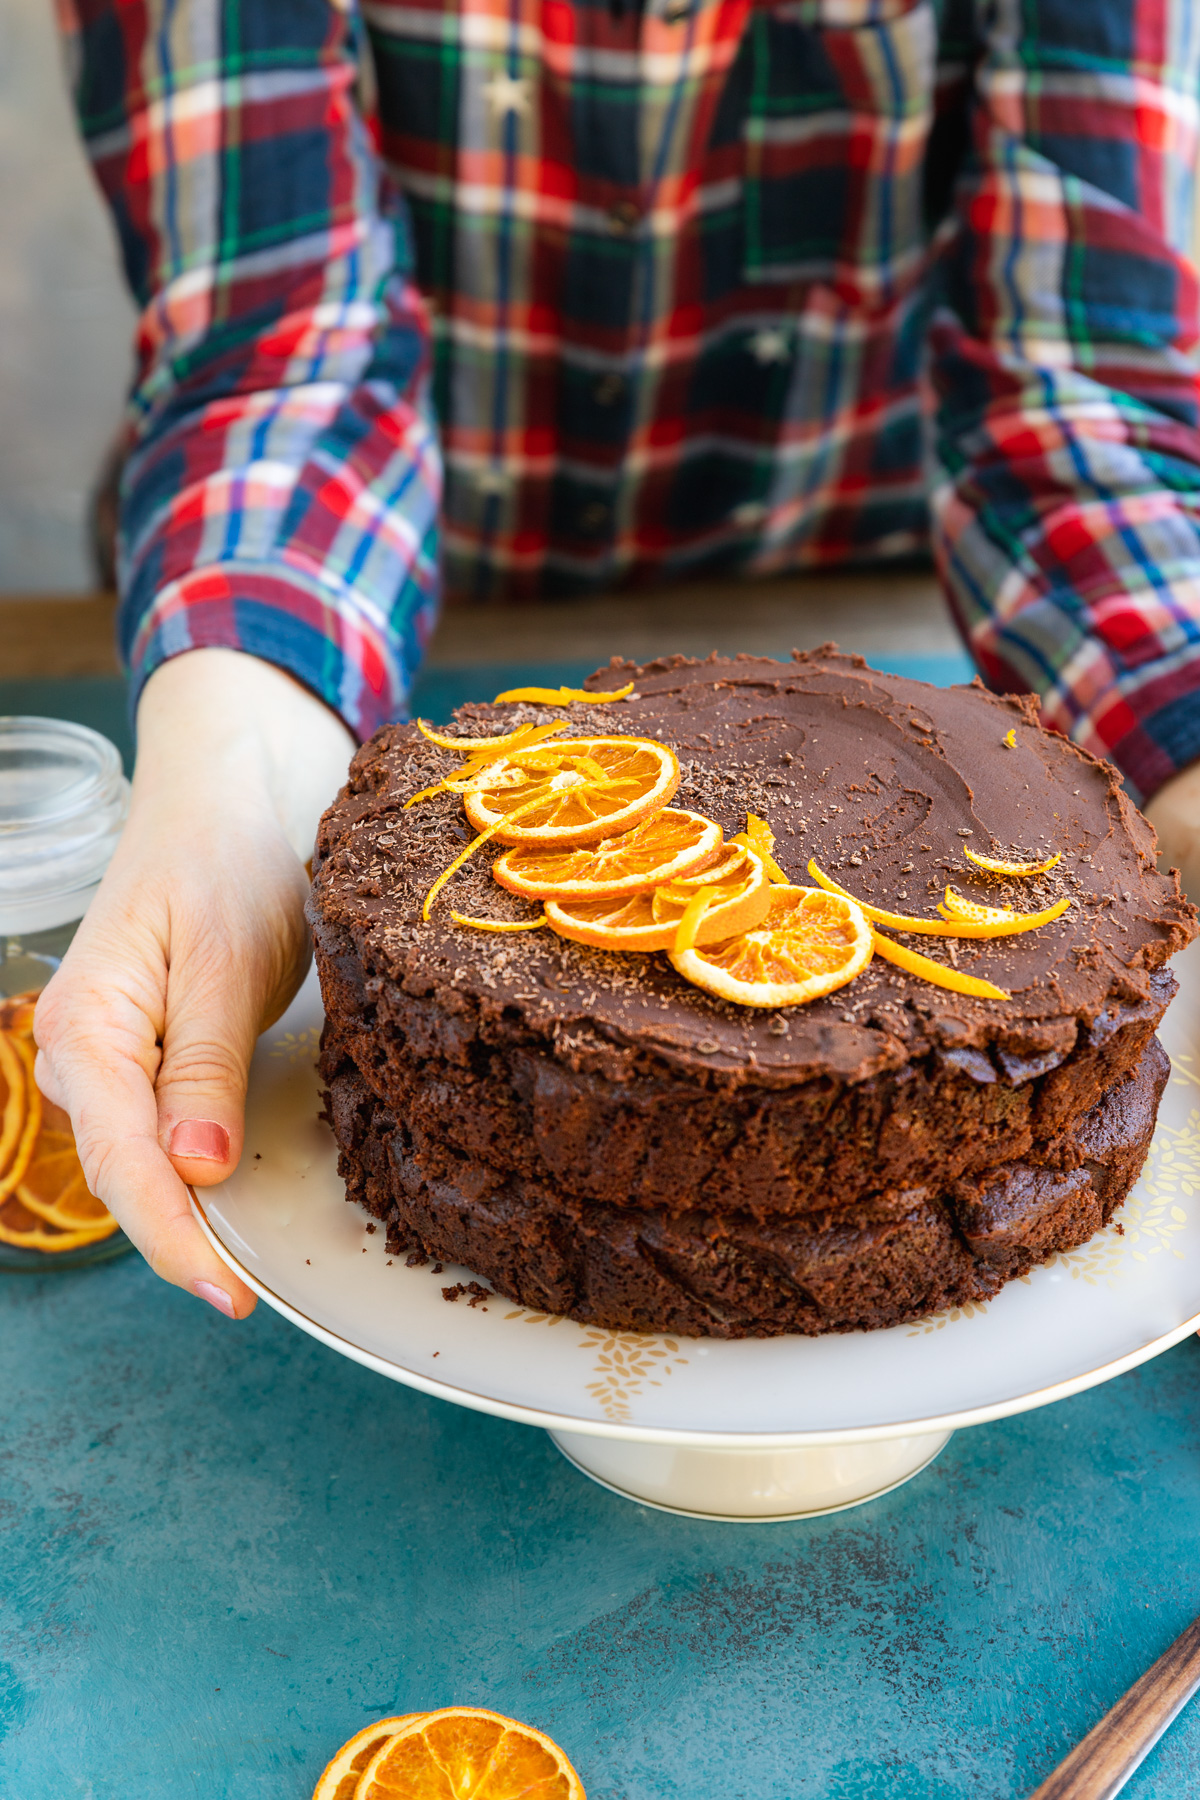 Someone in a red and blue checked shirt placing a decorated chocolate orange layer cake on a white cake stand on a blue surface